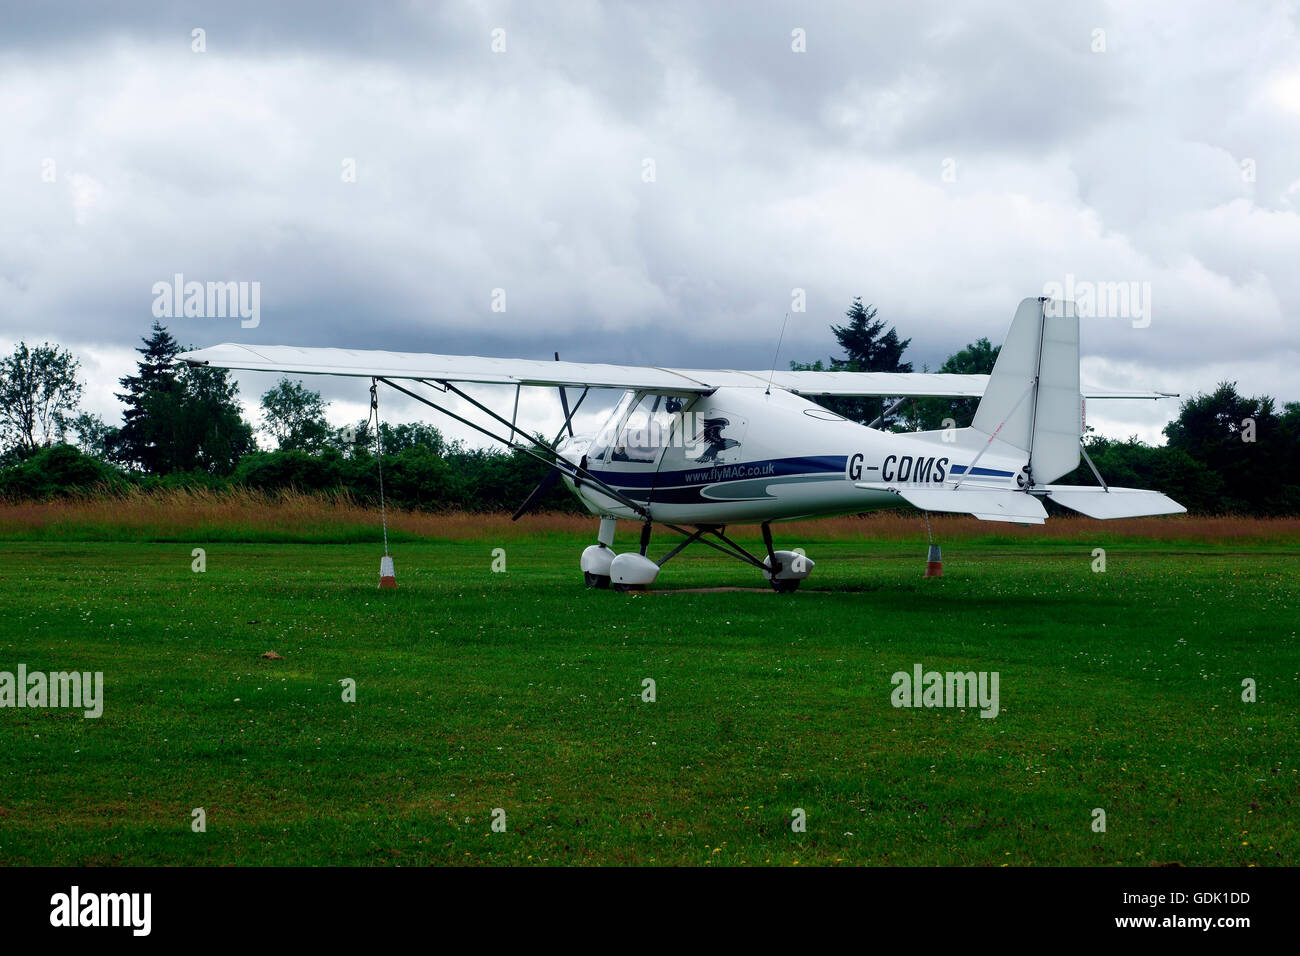 IKARUS C42 FB80  G-CDMS TIED DOWN - Stock Image